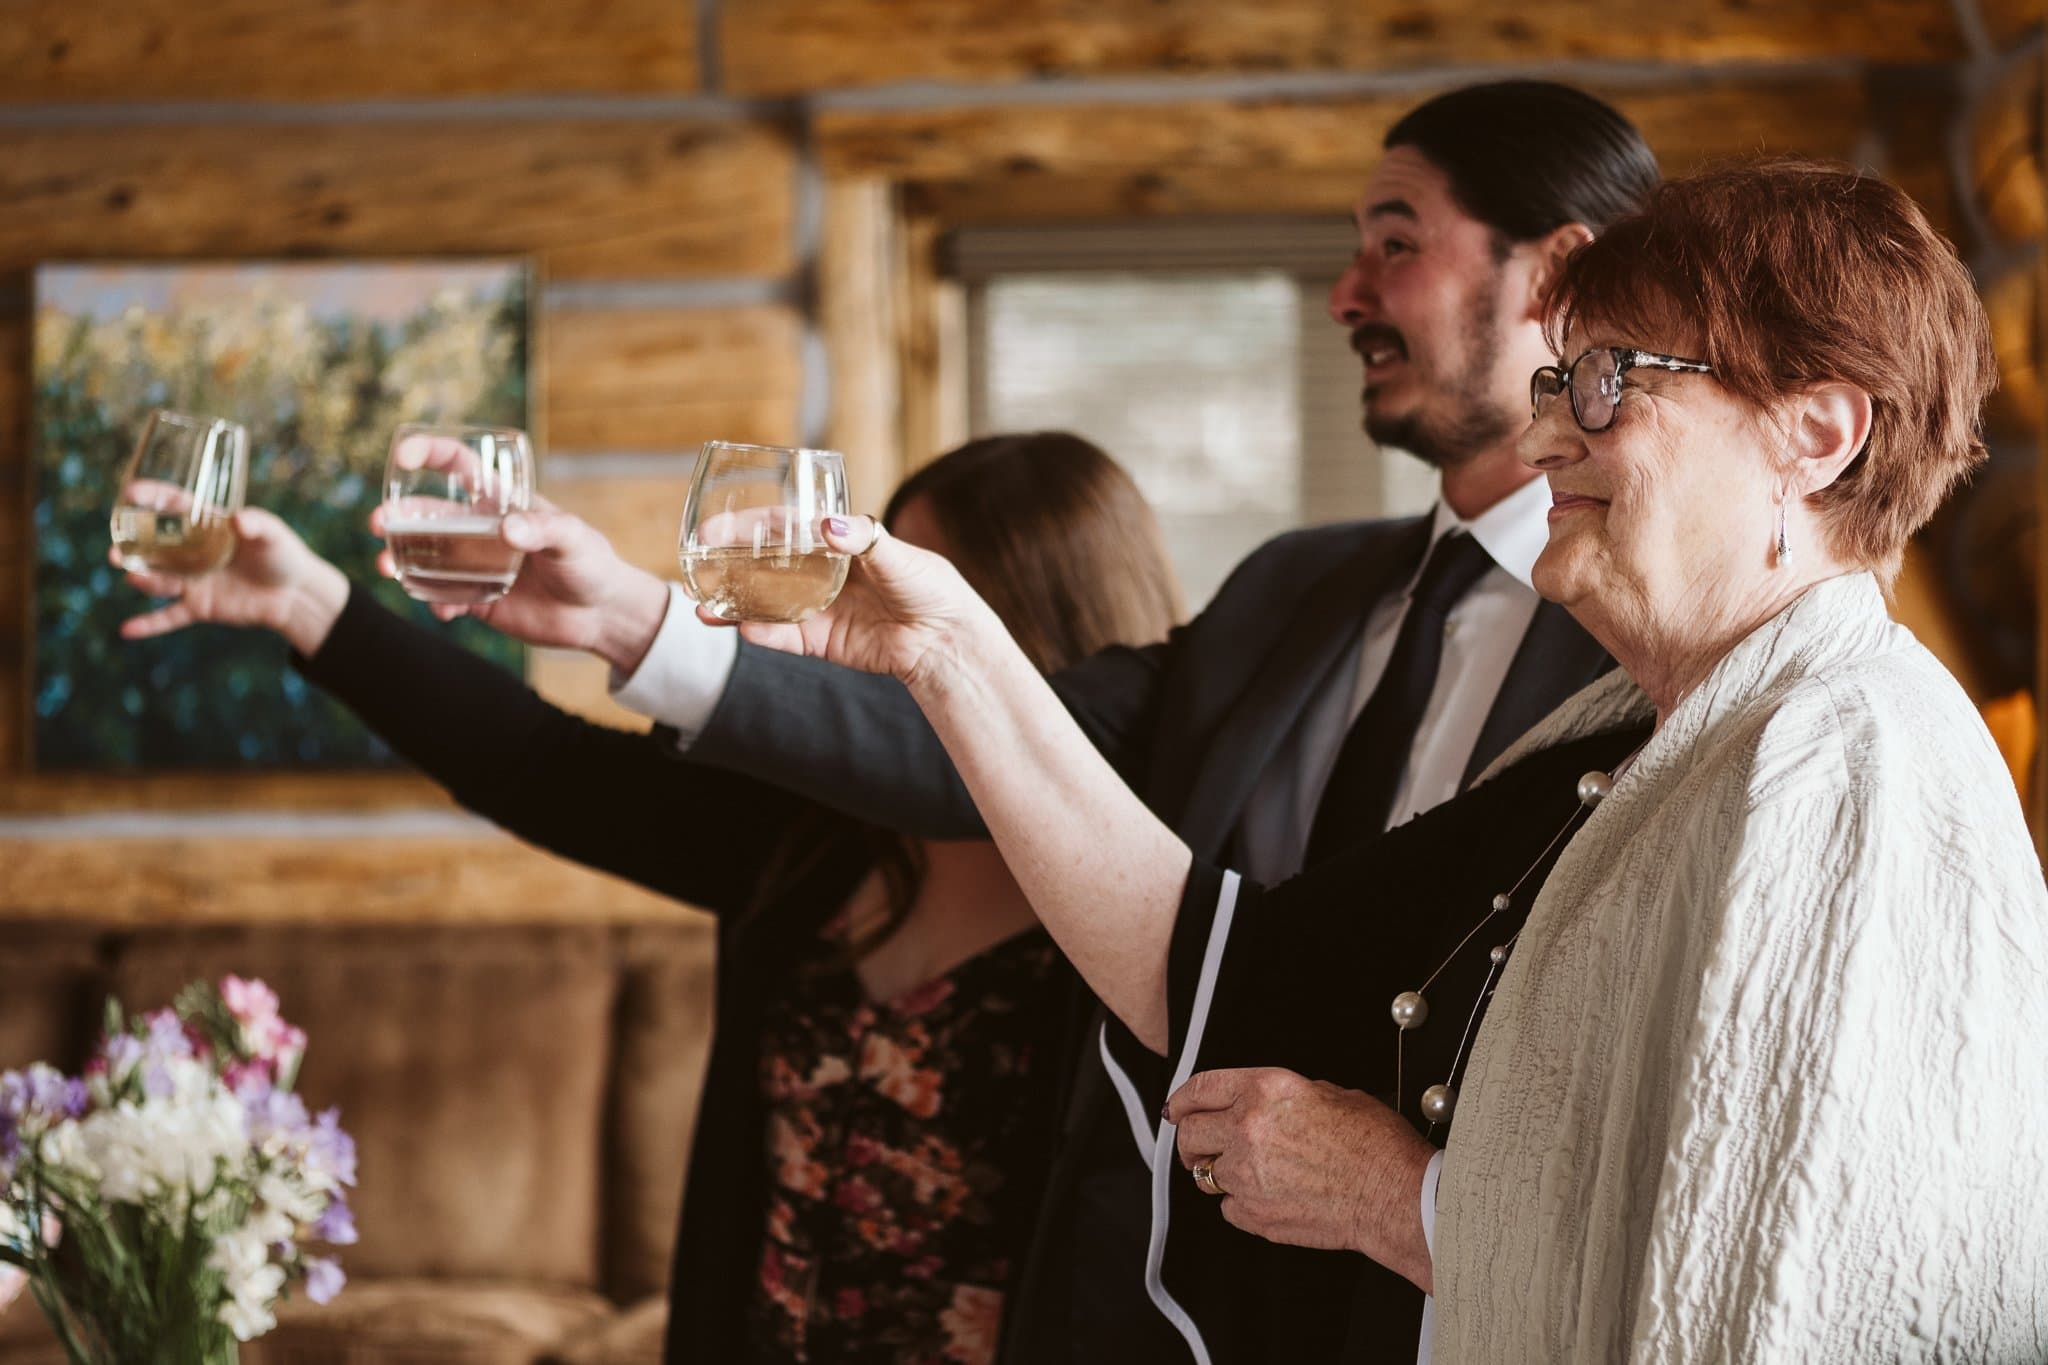 Wedding guests give toast to the bride and groom